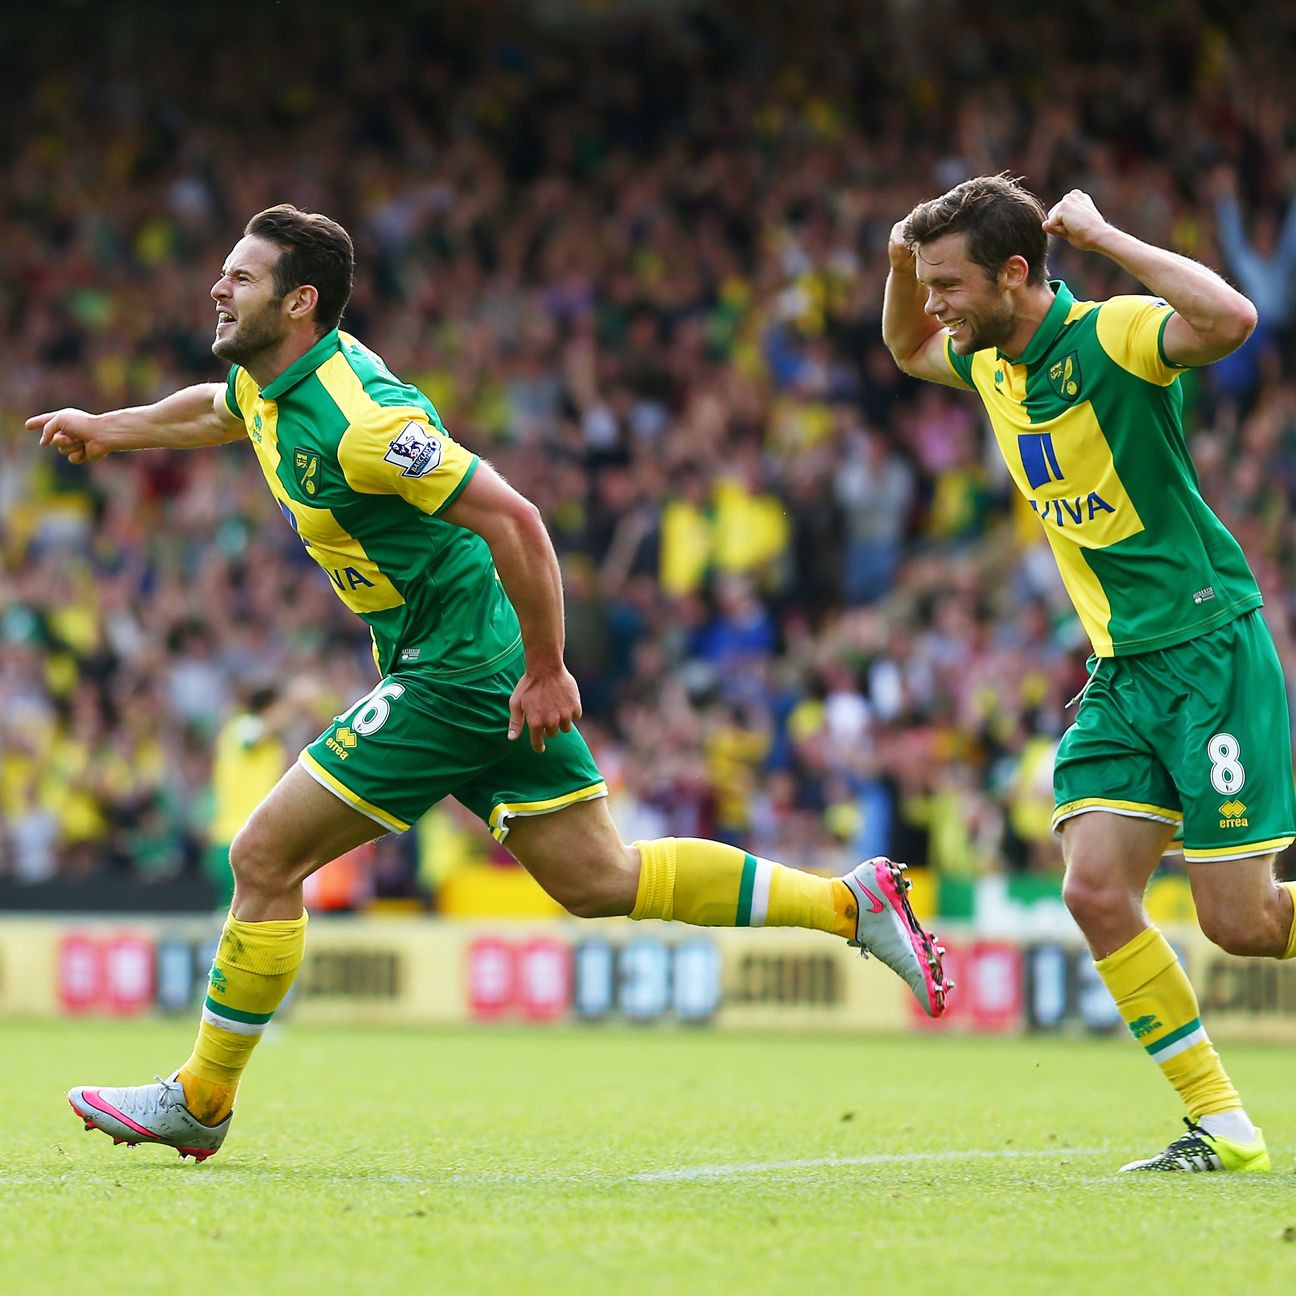 Norwich City have failed to establish any consistency in their first season back in the Premier League.